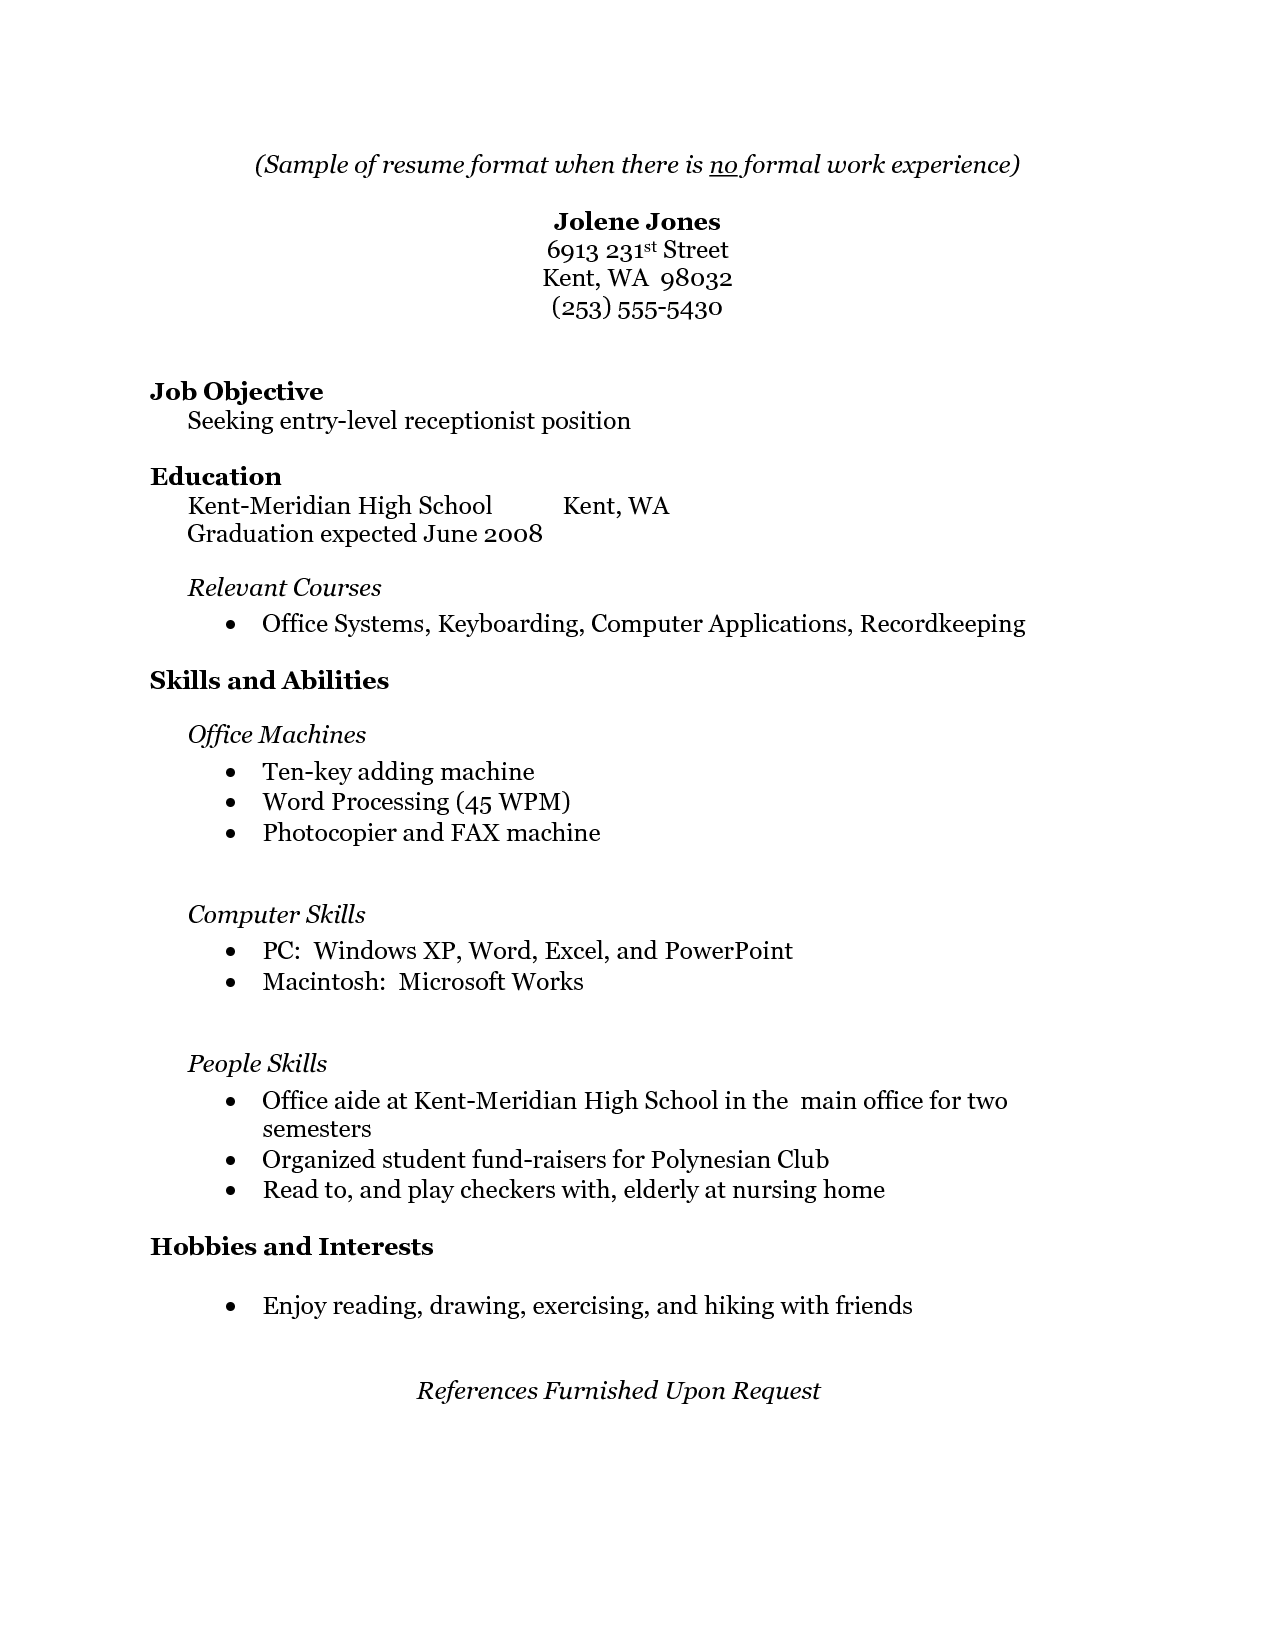 Sample Resume With No Experience Job Resume No Experience Examples  Httpwwwresumecareer